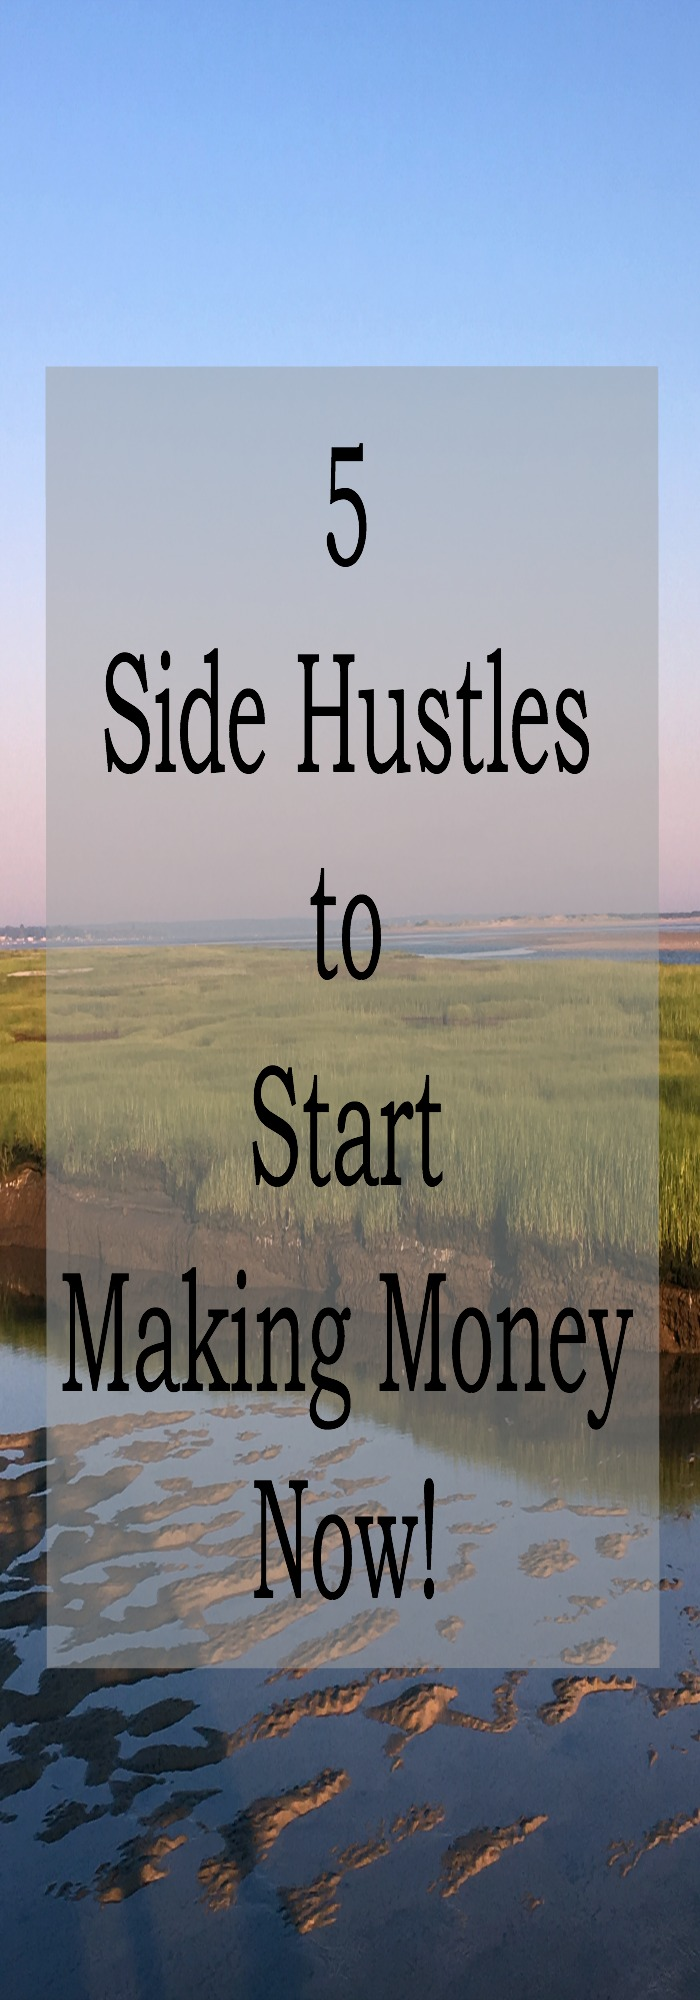 Looking for a way to increase your income? Check out these great side hustles to make money now!